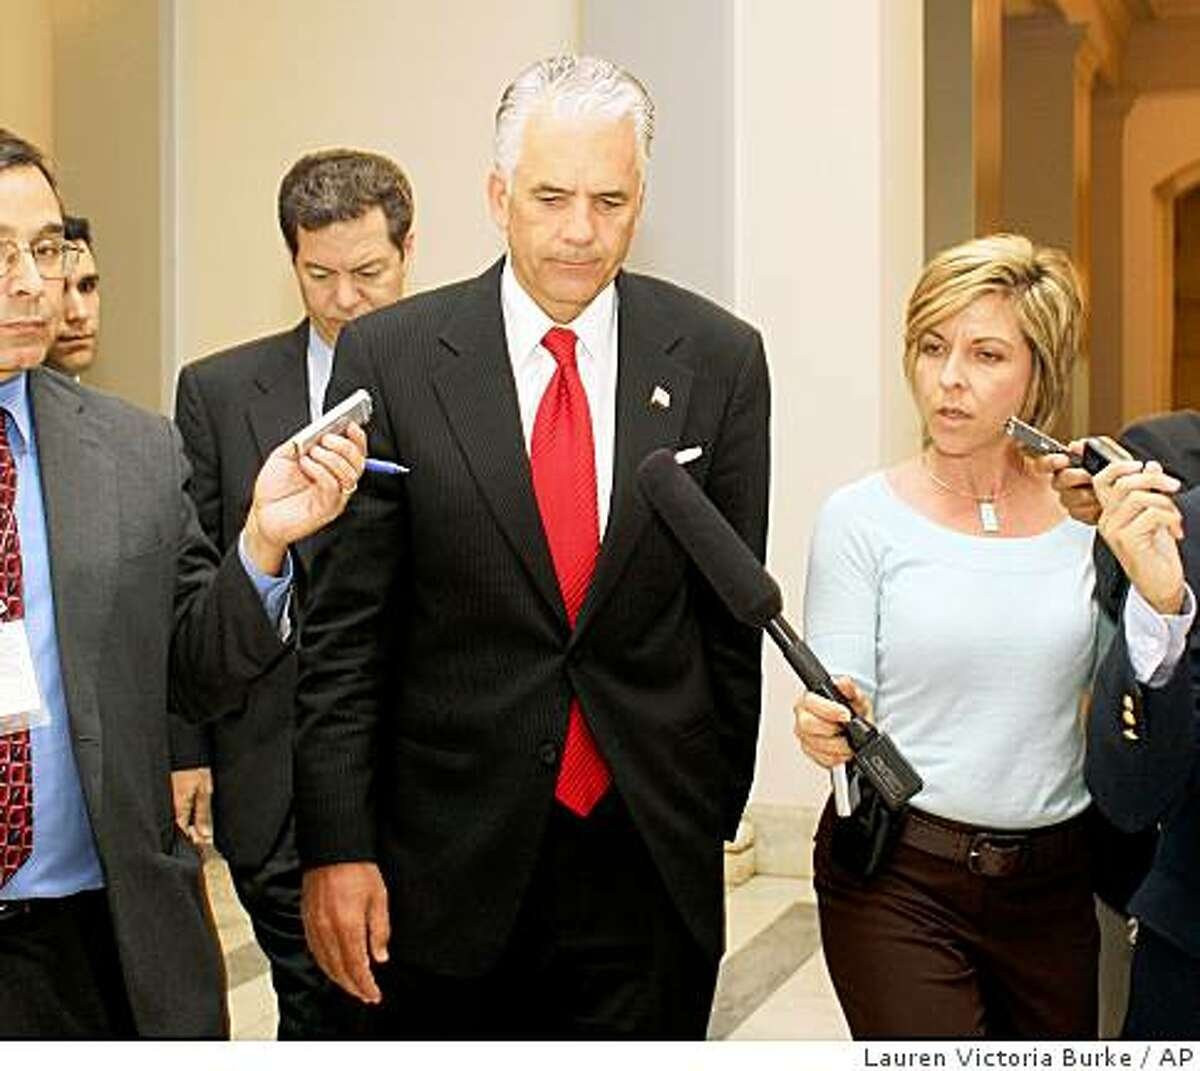 Sen. John Ensign, R-Nev. is seen talking with reporters on his way to a vote on Monday, June 22, 2009 on Capitol Hill in Washington. (AP Photo/Lauren Victoria Burke)